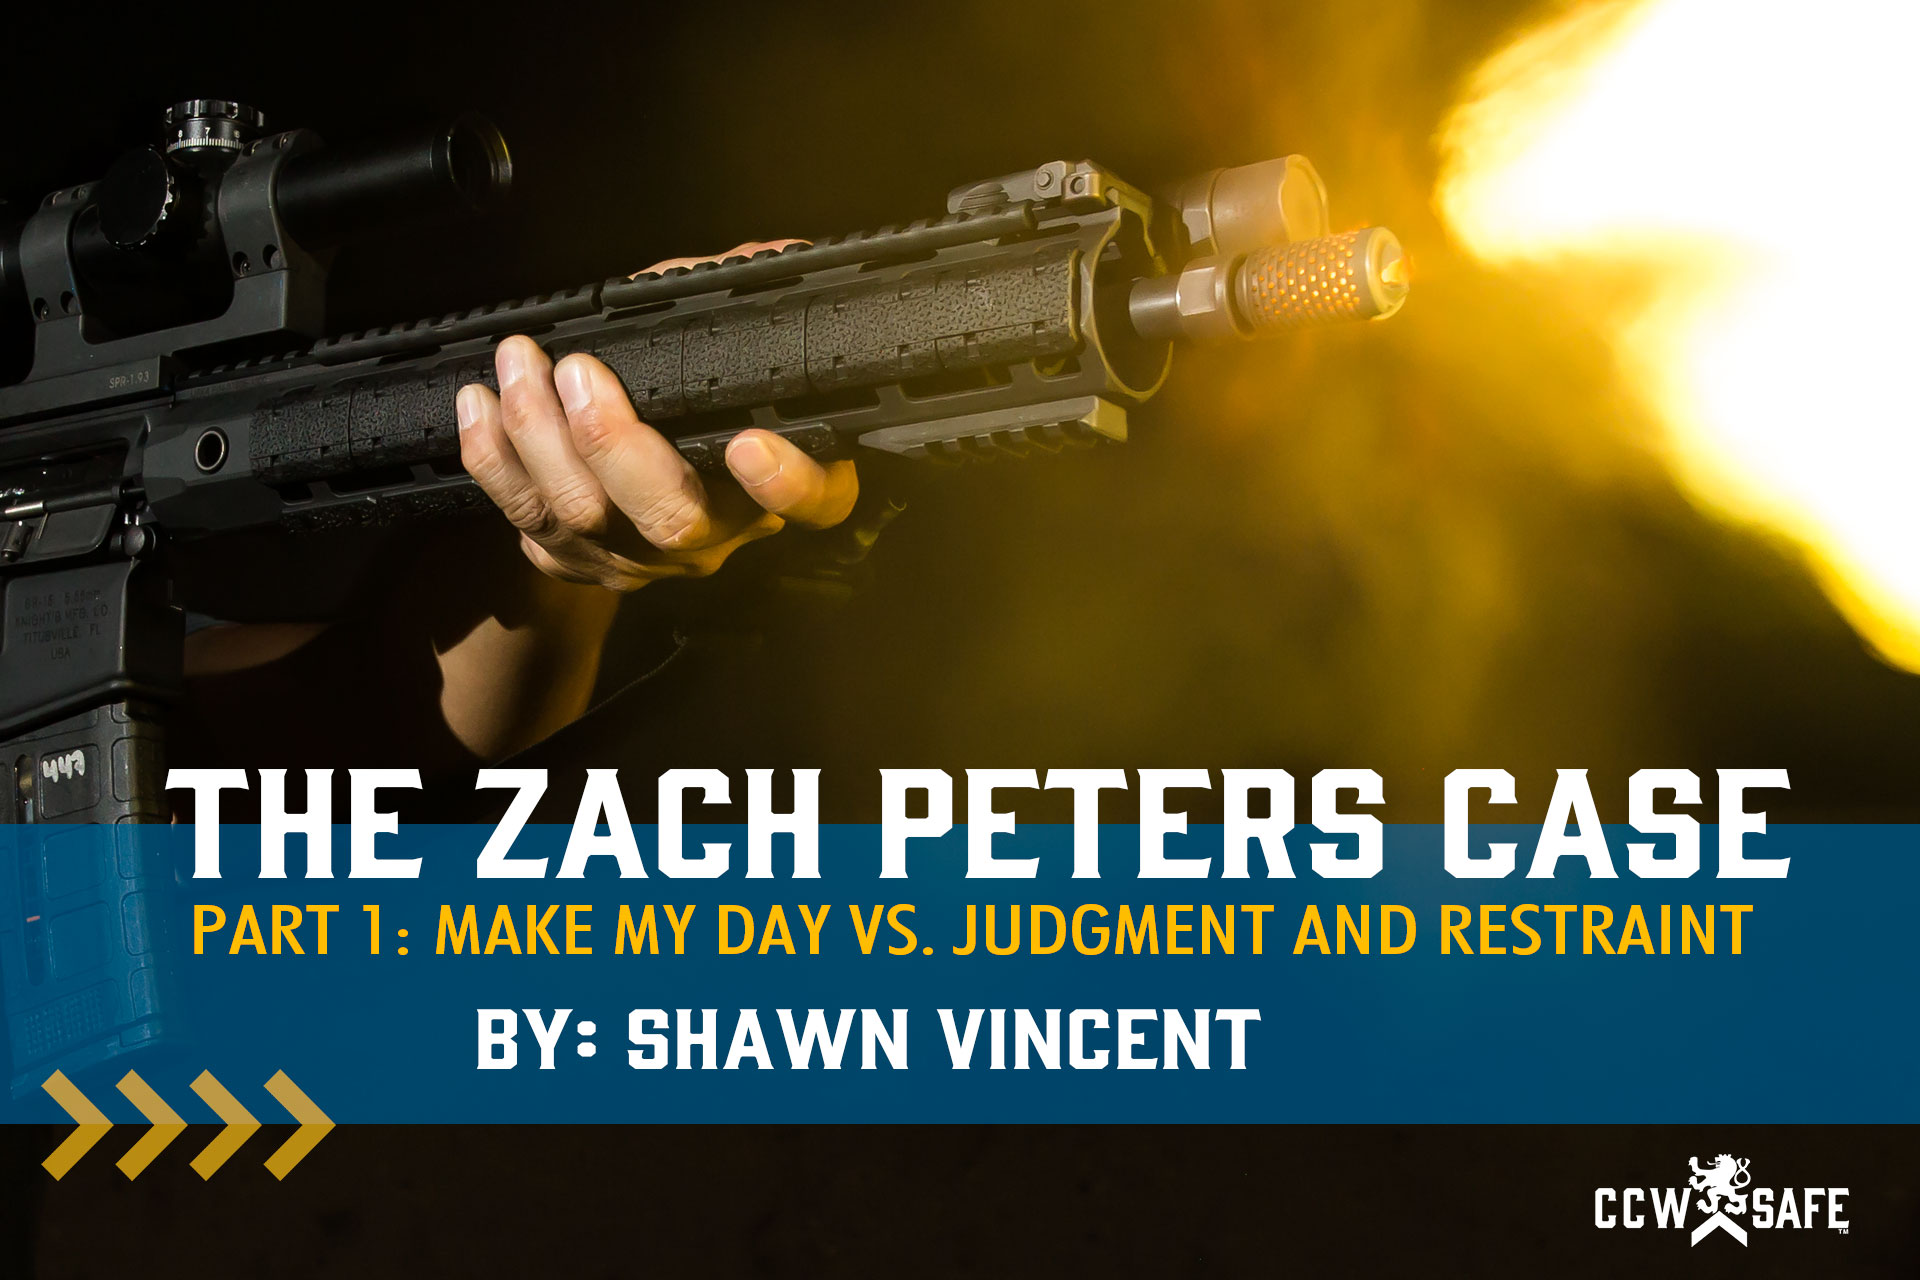 The Zach Peters Case Part 1: Make My Day vs. Judgment and Restraint